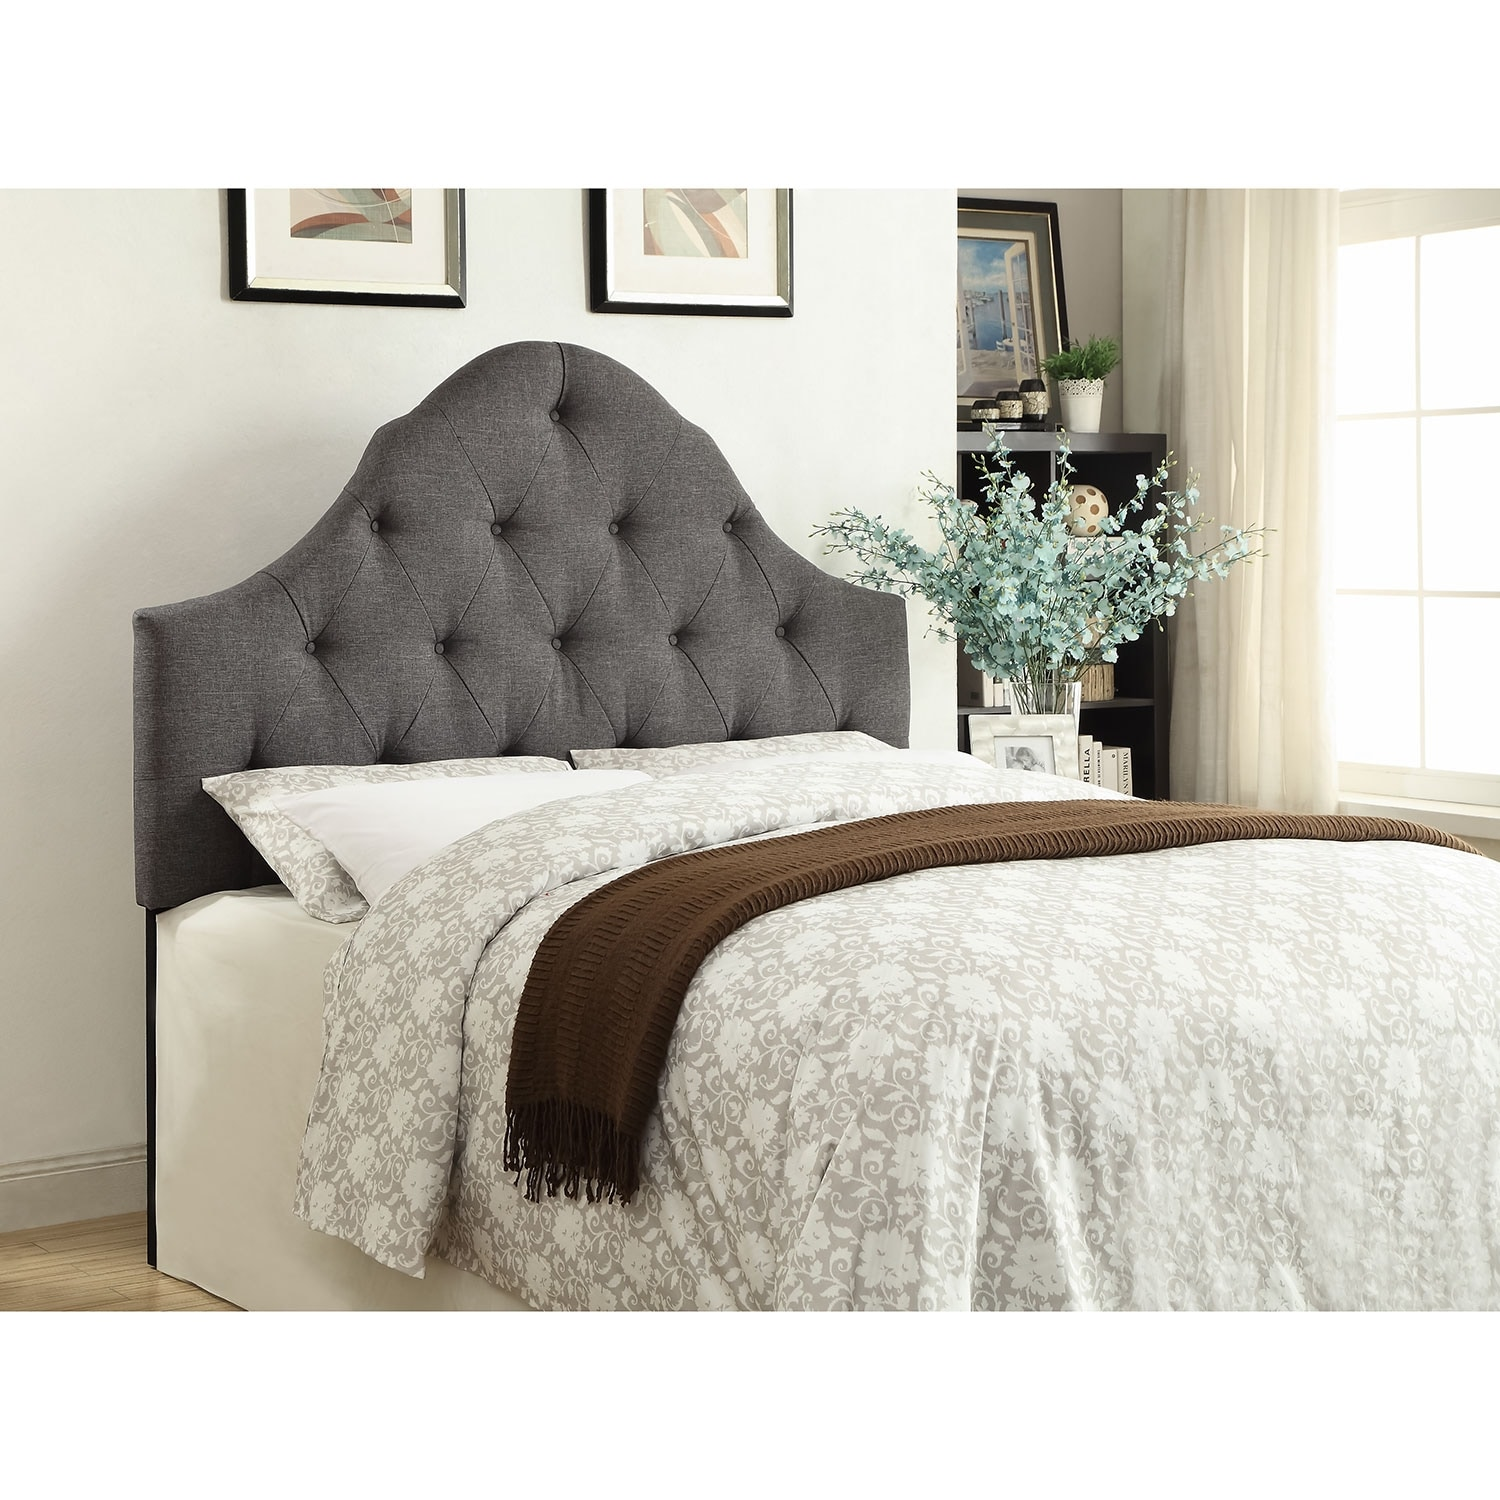 Bedroom Furniture - Brittany Gray King/California King Headboard